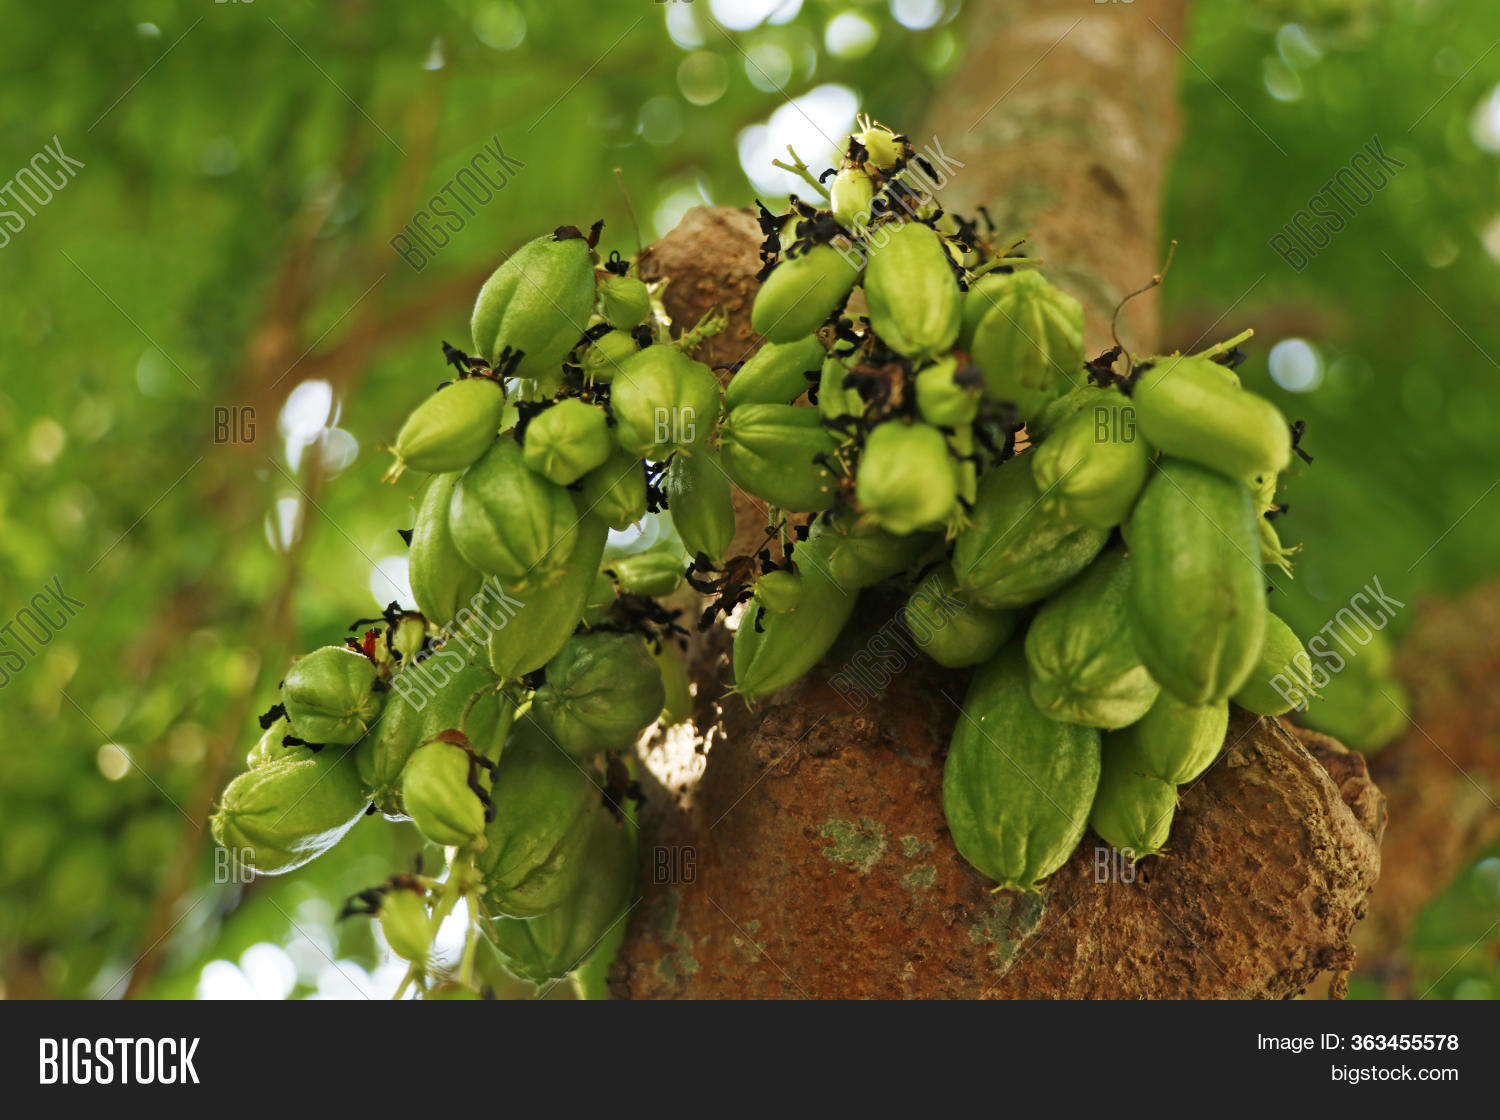 Averrhoa Bilimbi (commonly Known As Bilimbi, Cucumber Tree, Or Tree Sorrel,  Bilimbi Is A Small Trop